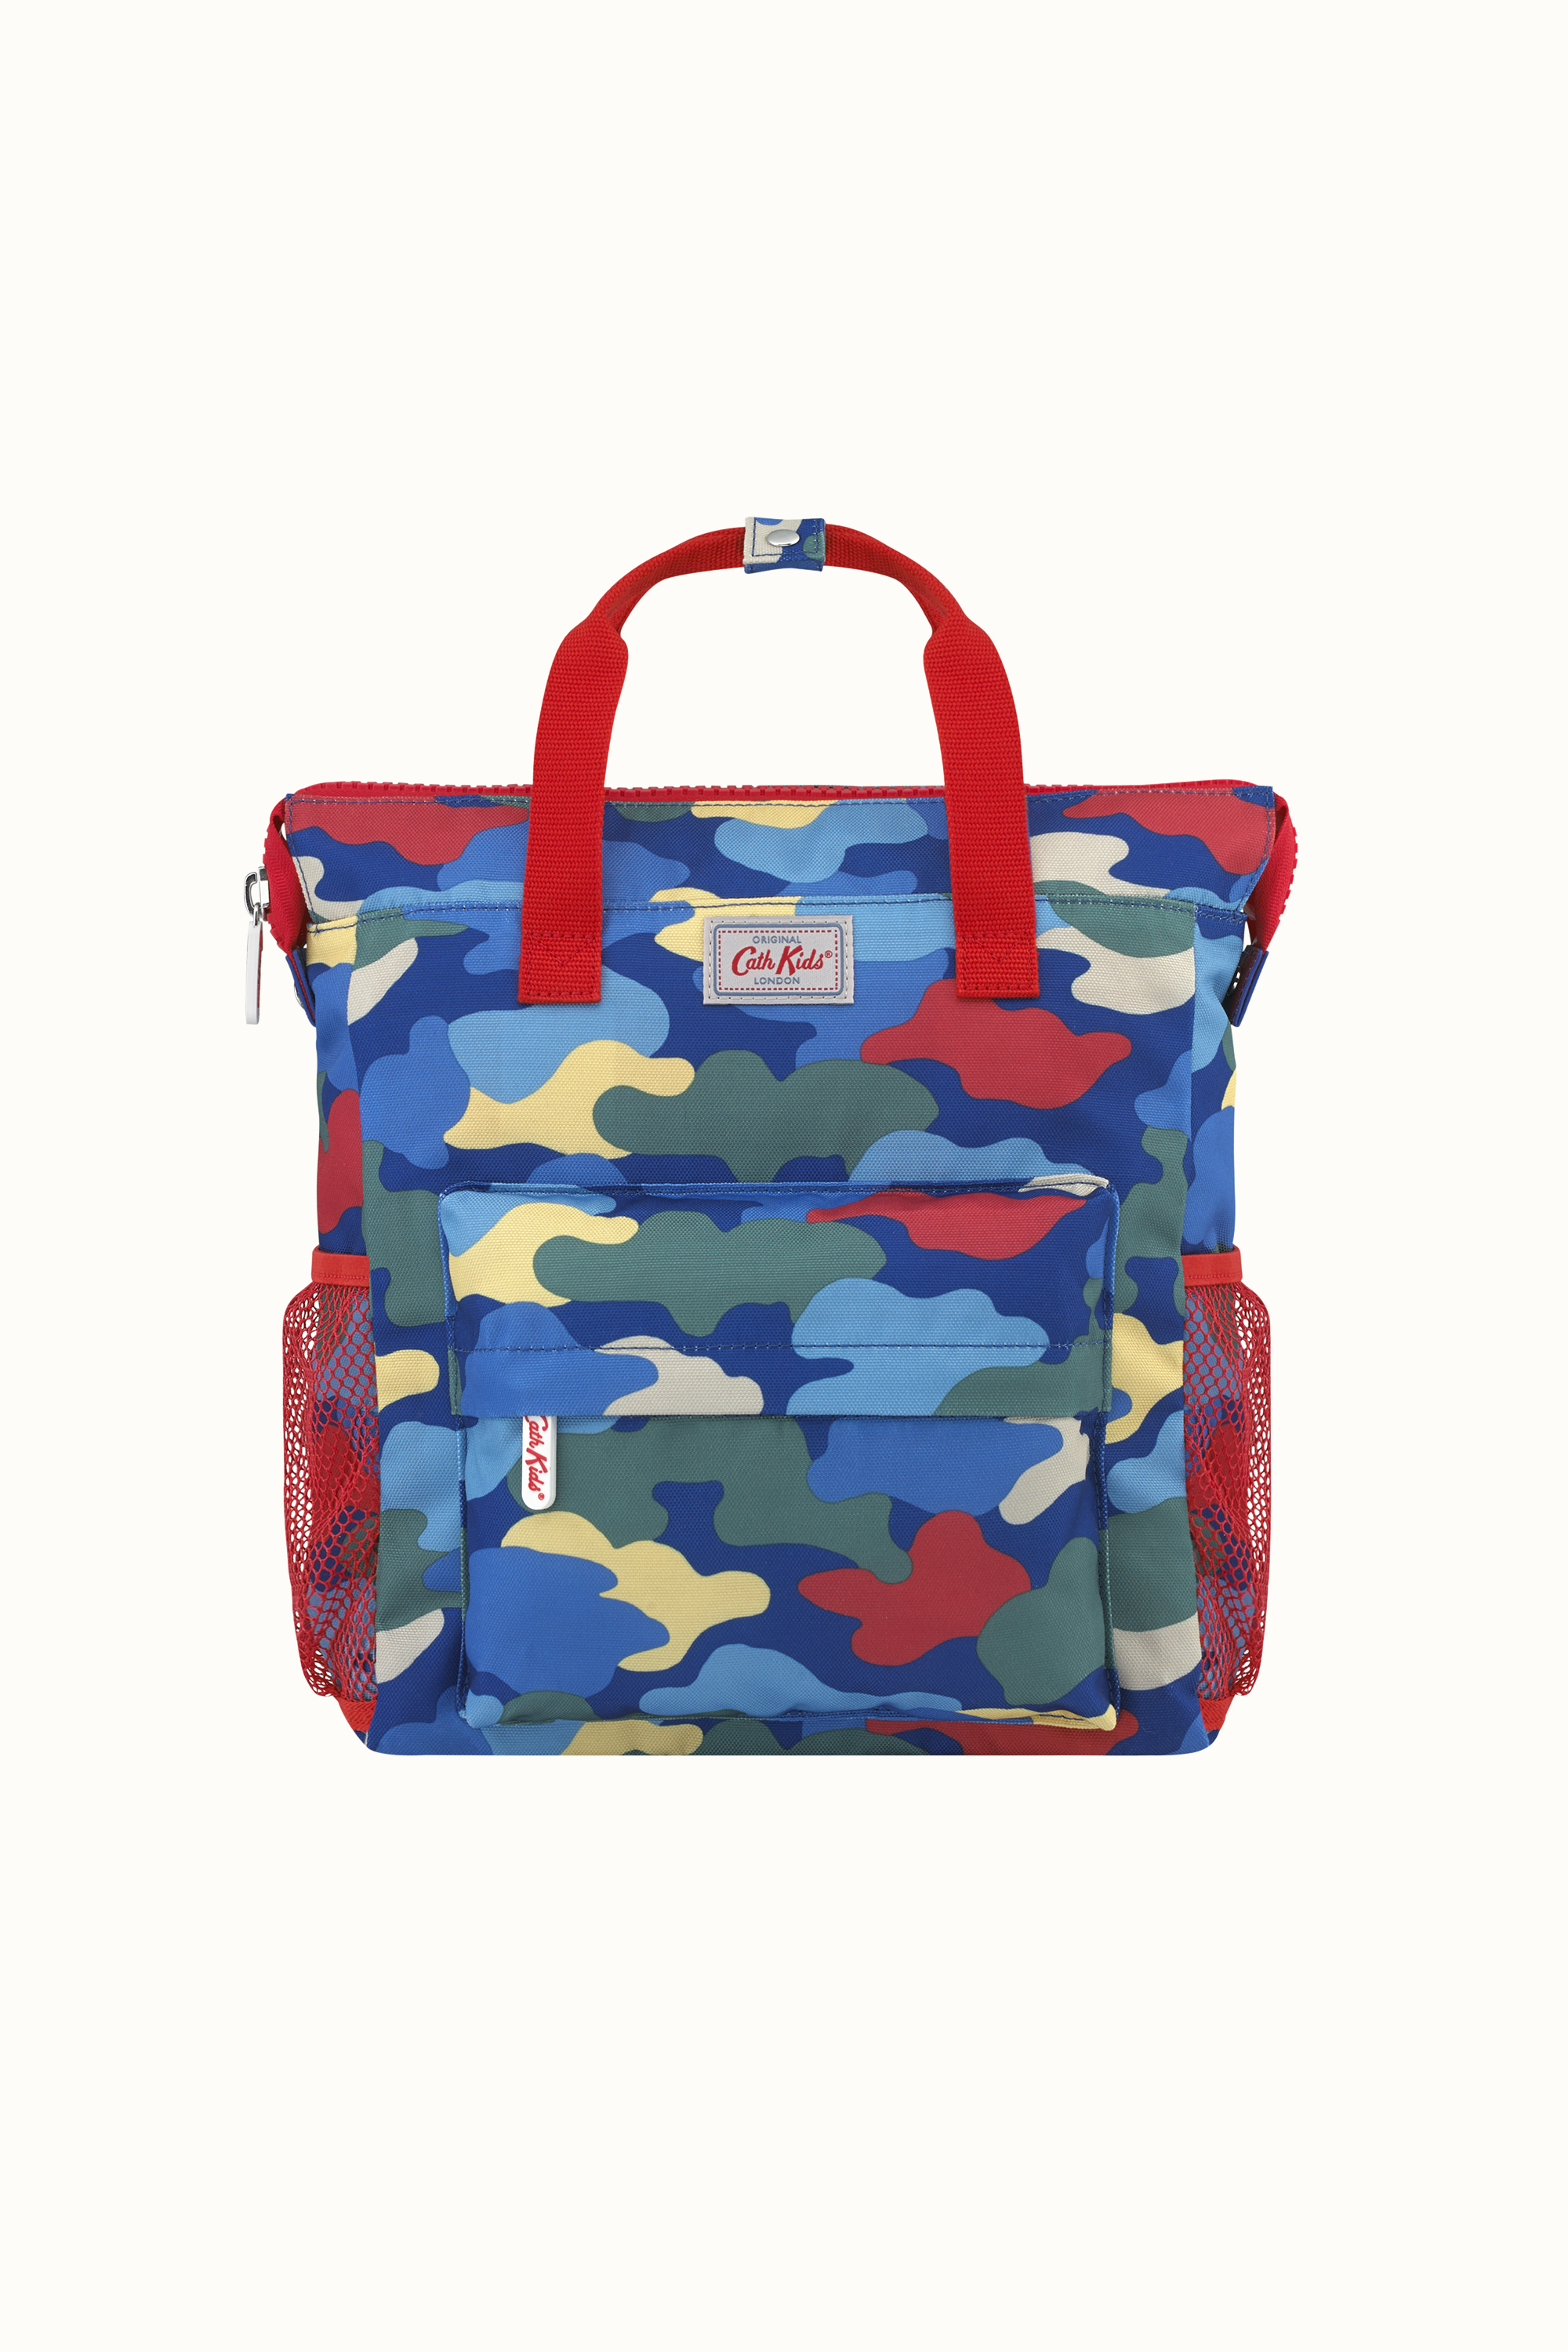 Cath Kidston Camouflage Kids Large Tote Backpack in Navy